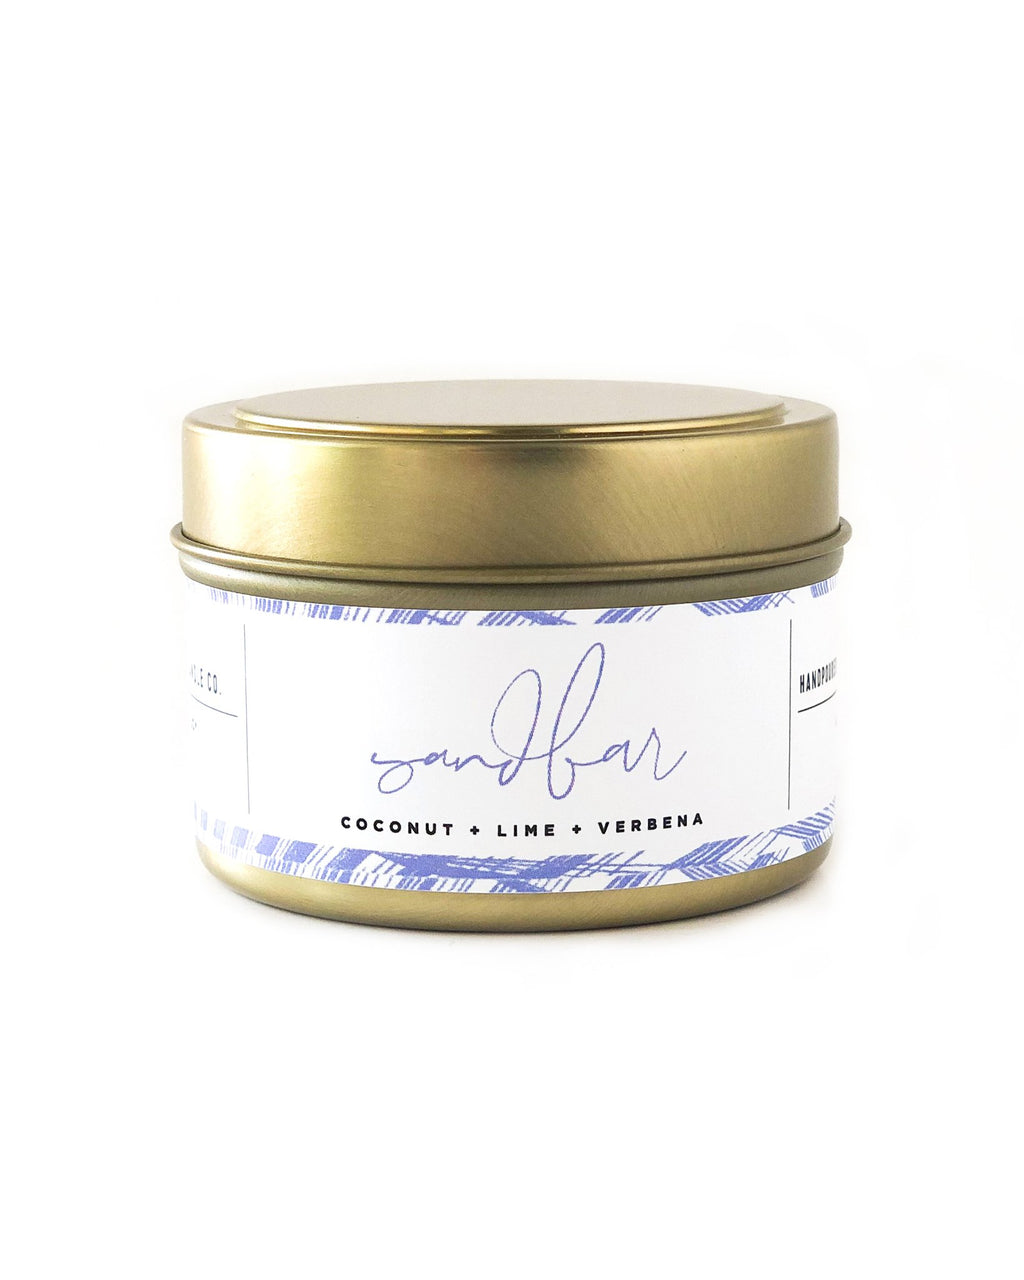 Sandbar Travel Candle